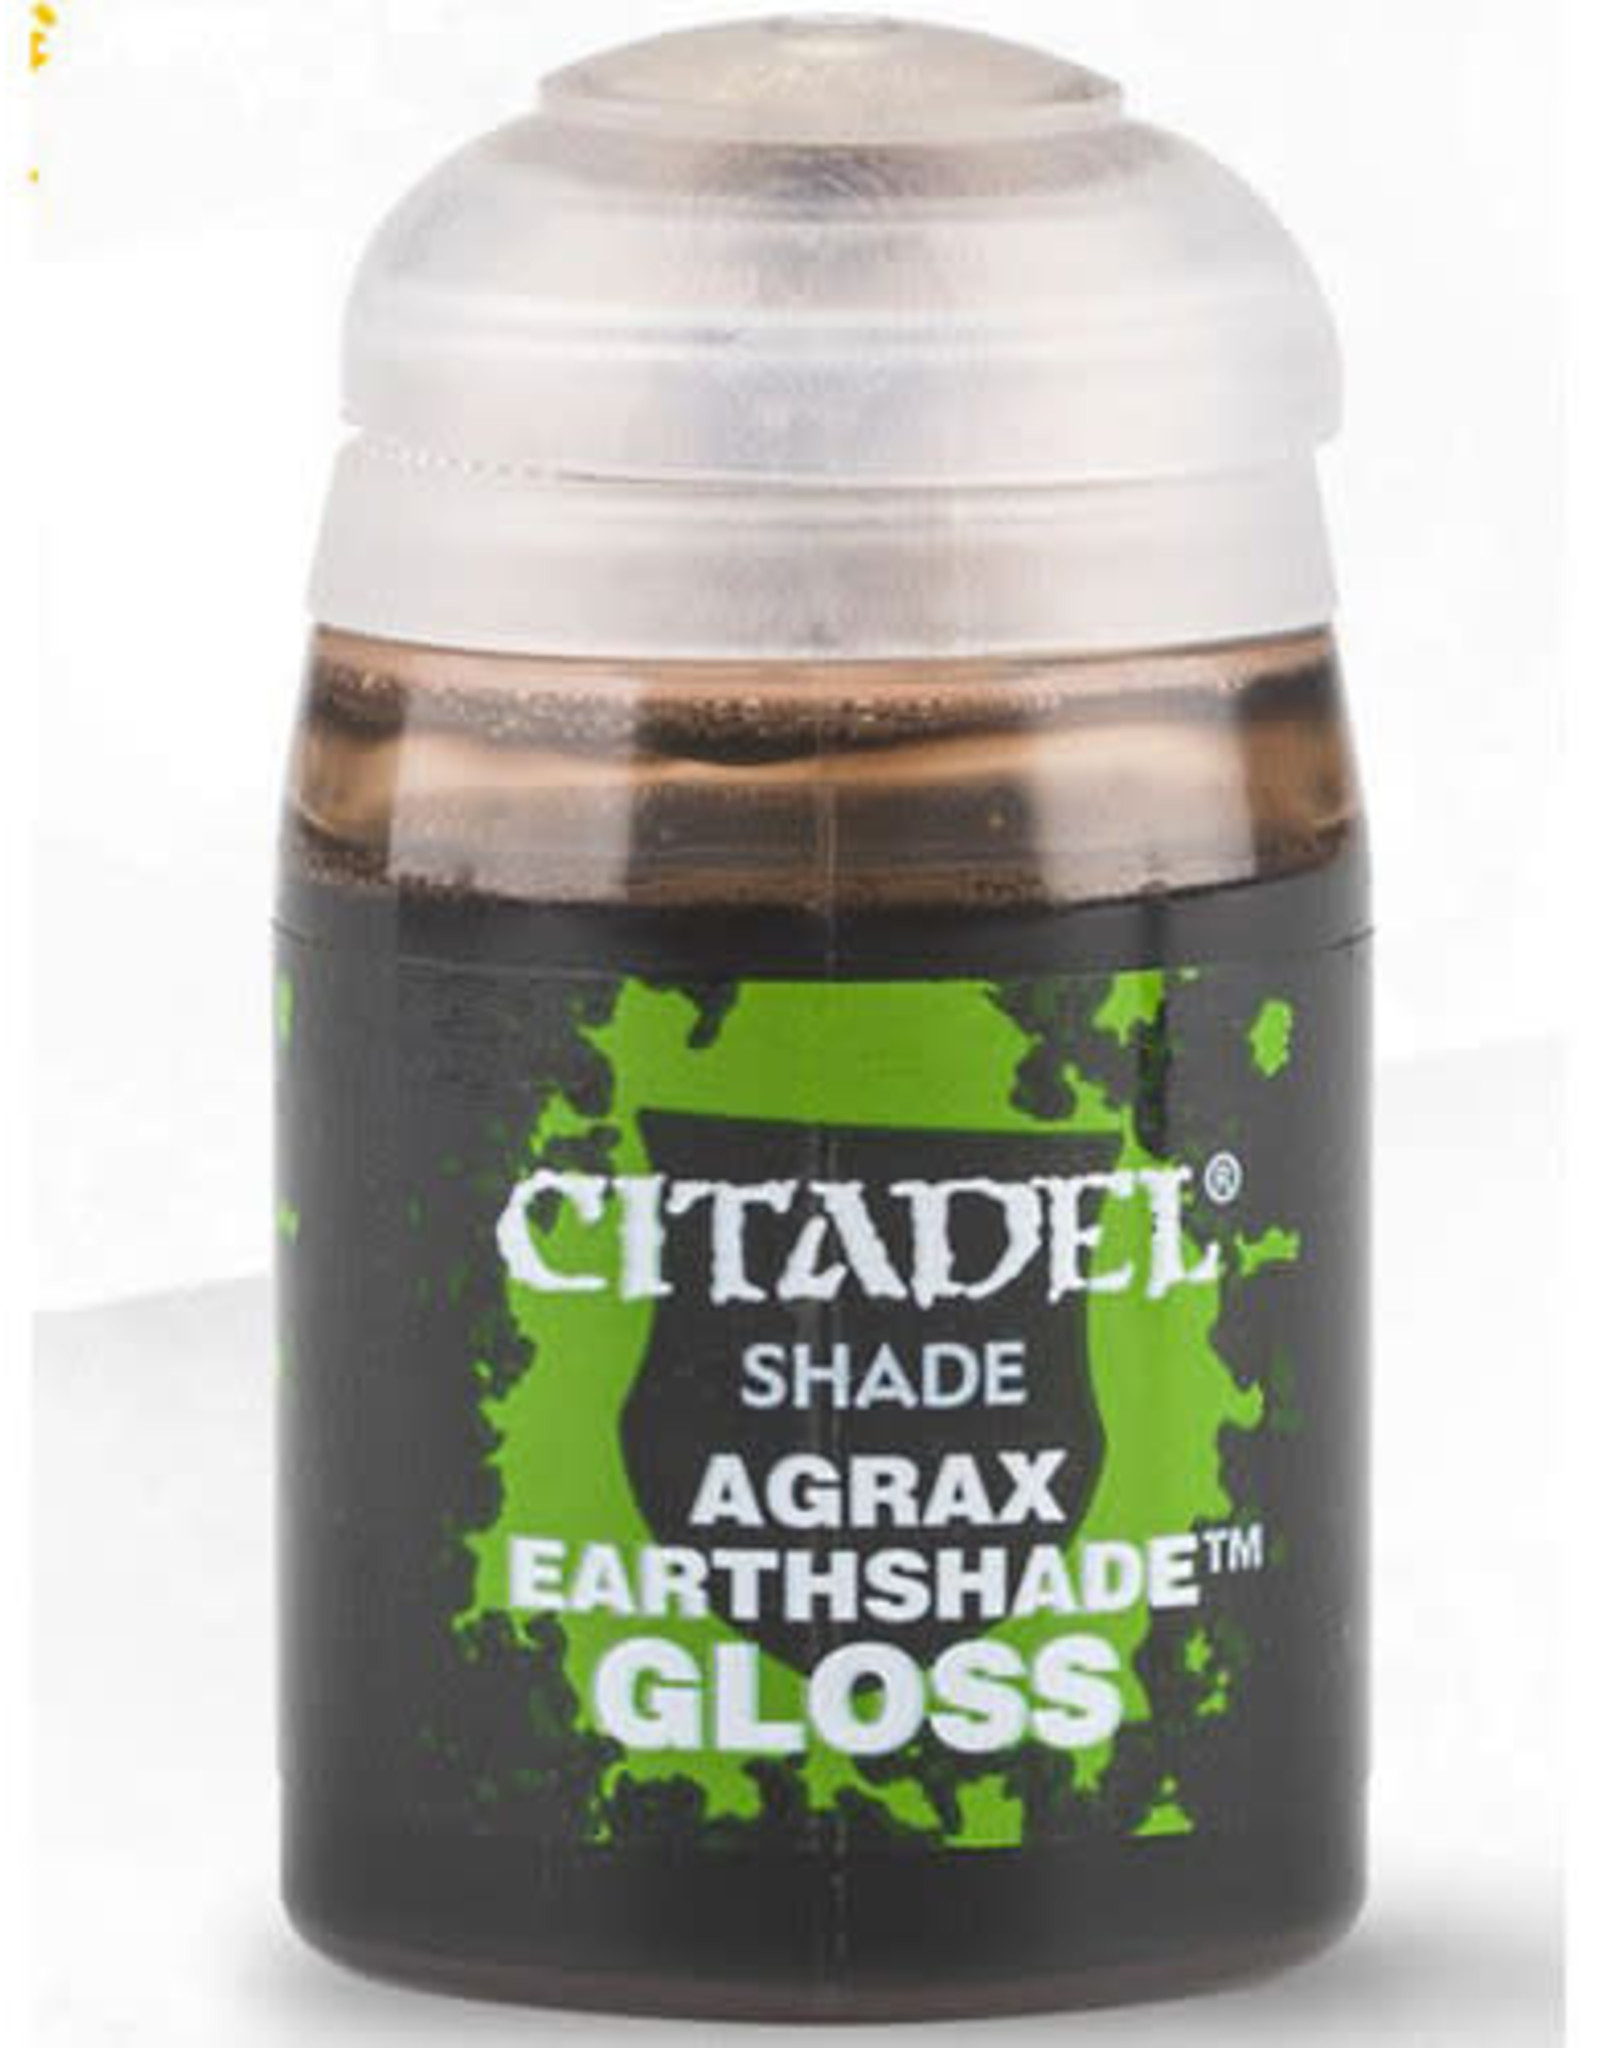 Games Workshop Citadel Paint: Shade - Agrax Earthshade Gloss (24ml)